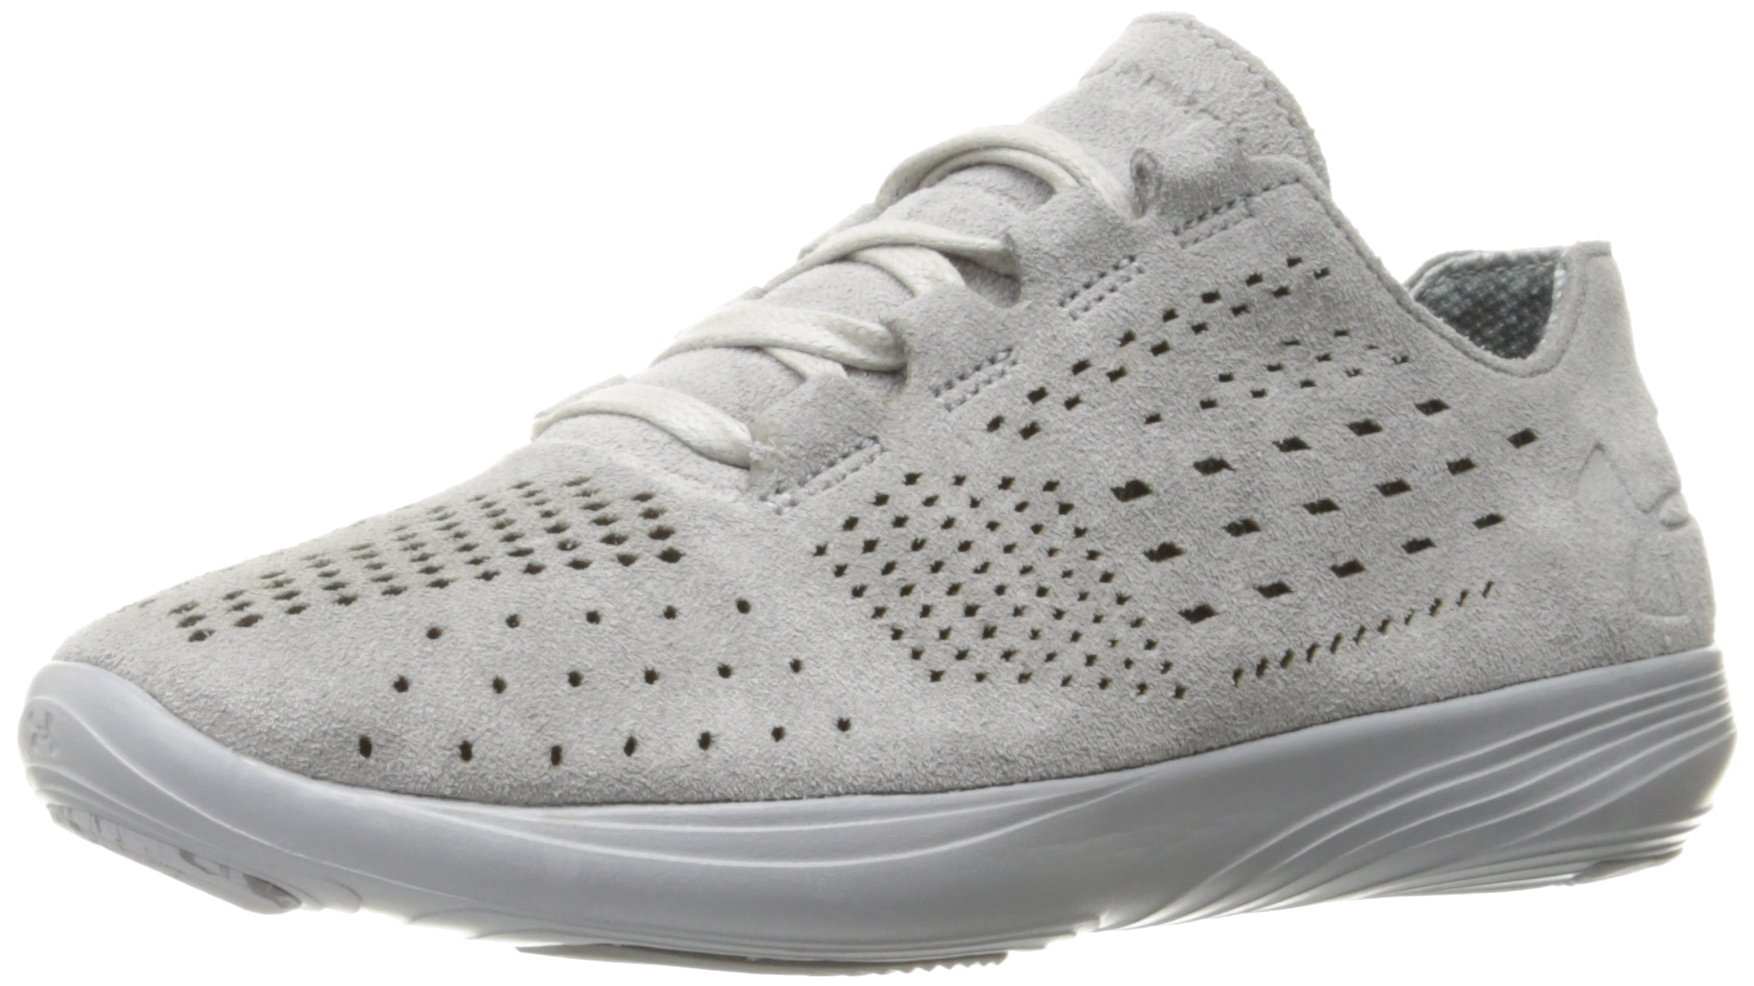 Under Armour Women's Street Precision Low Lux Sneaker, Gray, 7.5